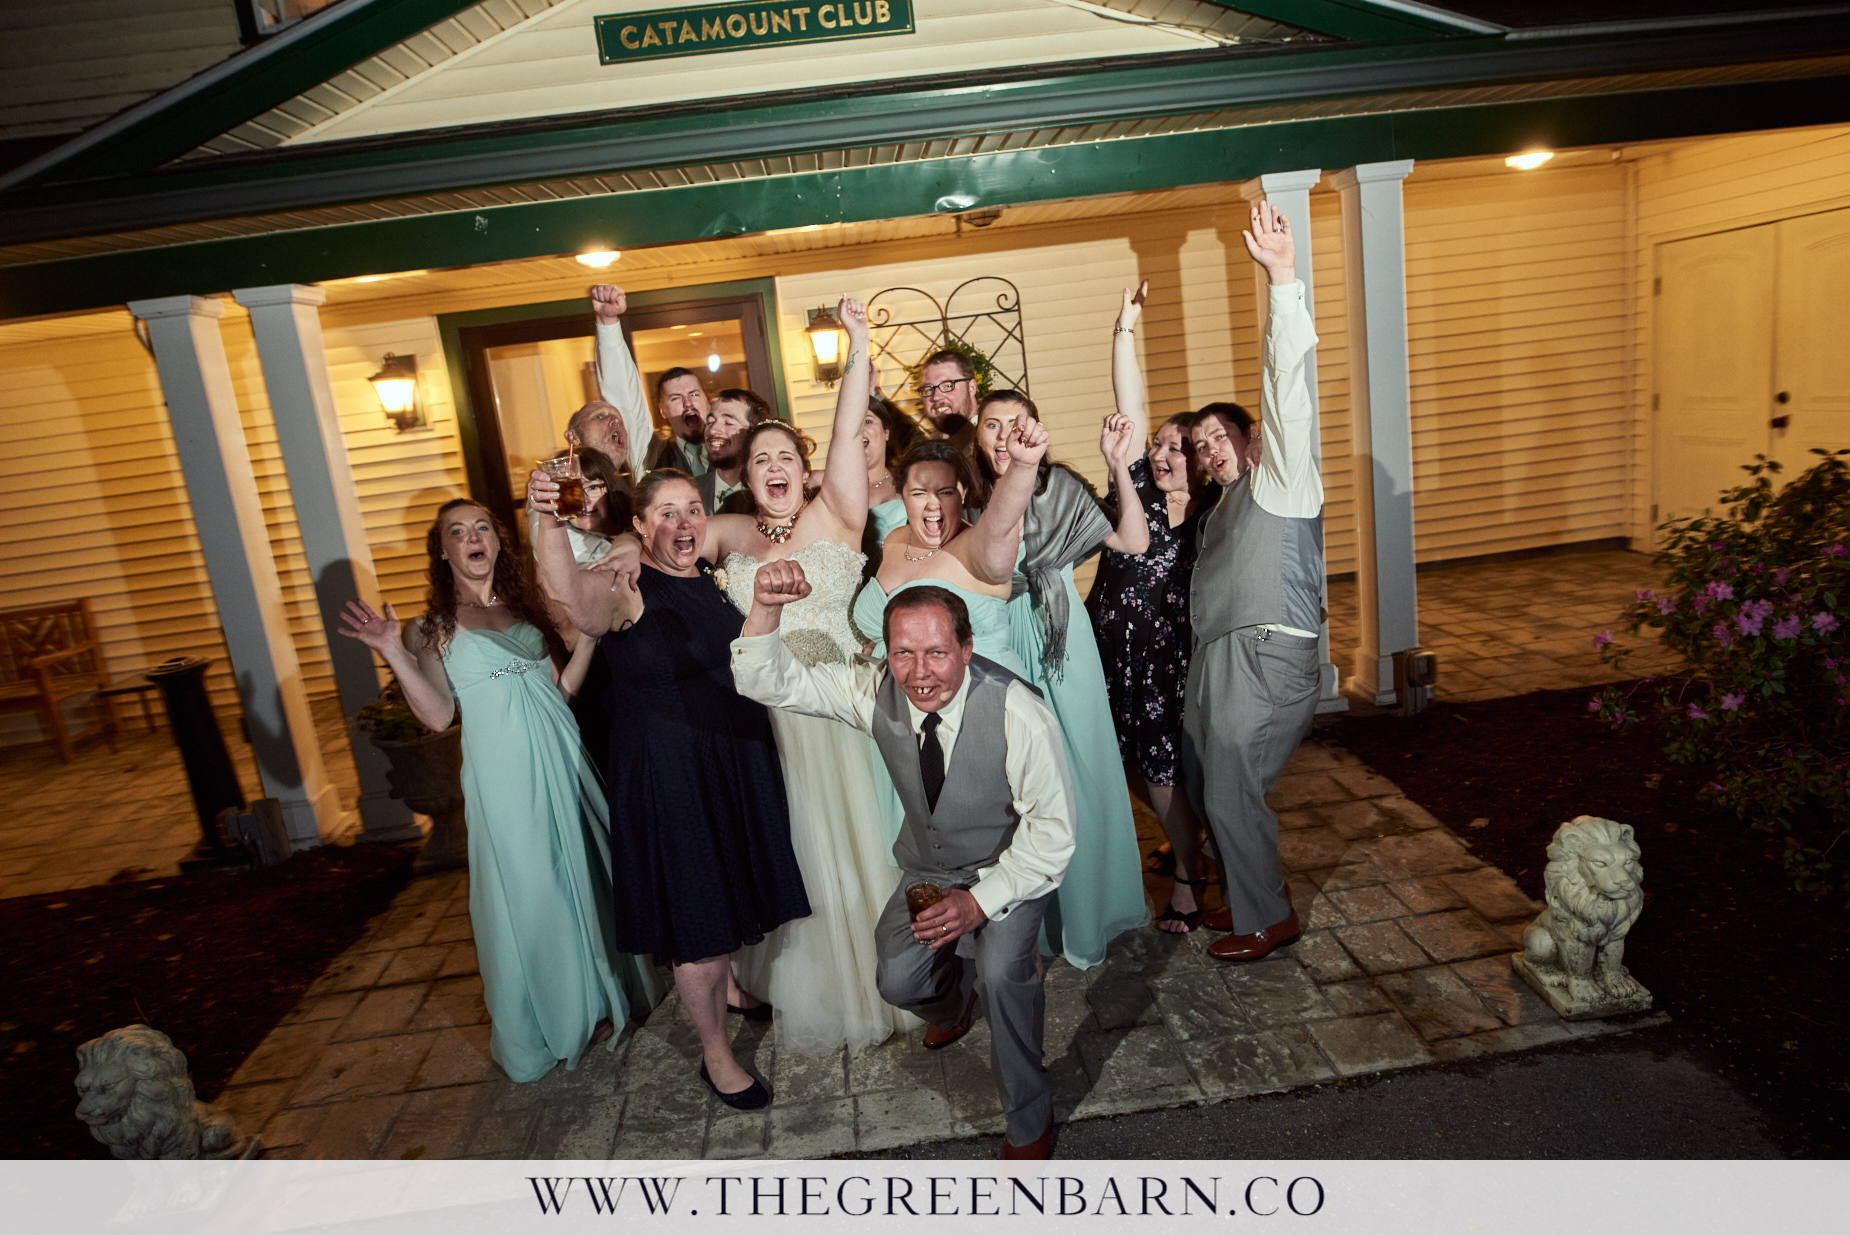 Wedding Party Bridal Party Fun Photo at the End of the Night of a Spring Wedding in Northern Vermont